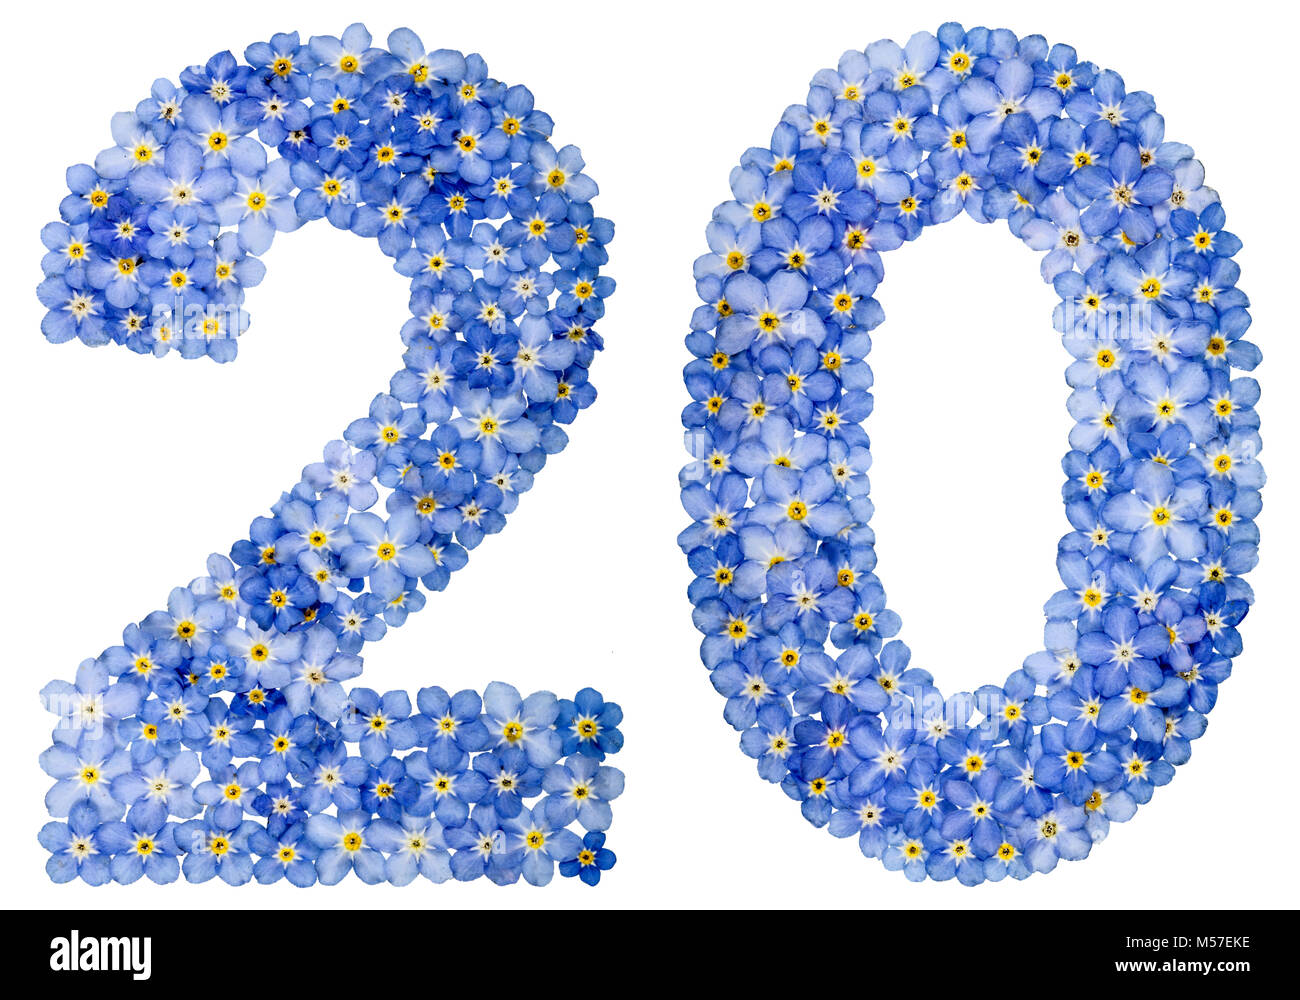 Arabic numeral 20, twenty, from blue forget-me-not flowers - Stock Image